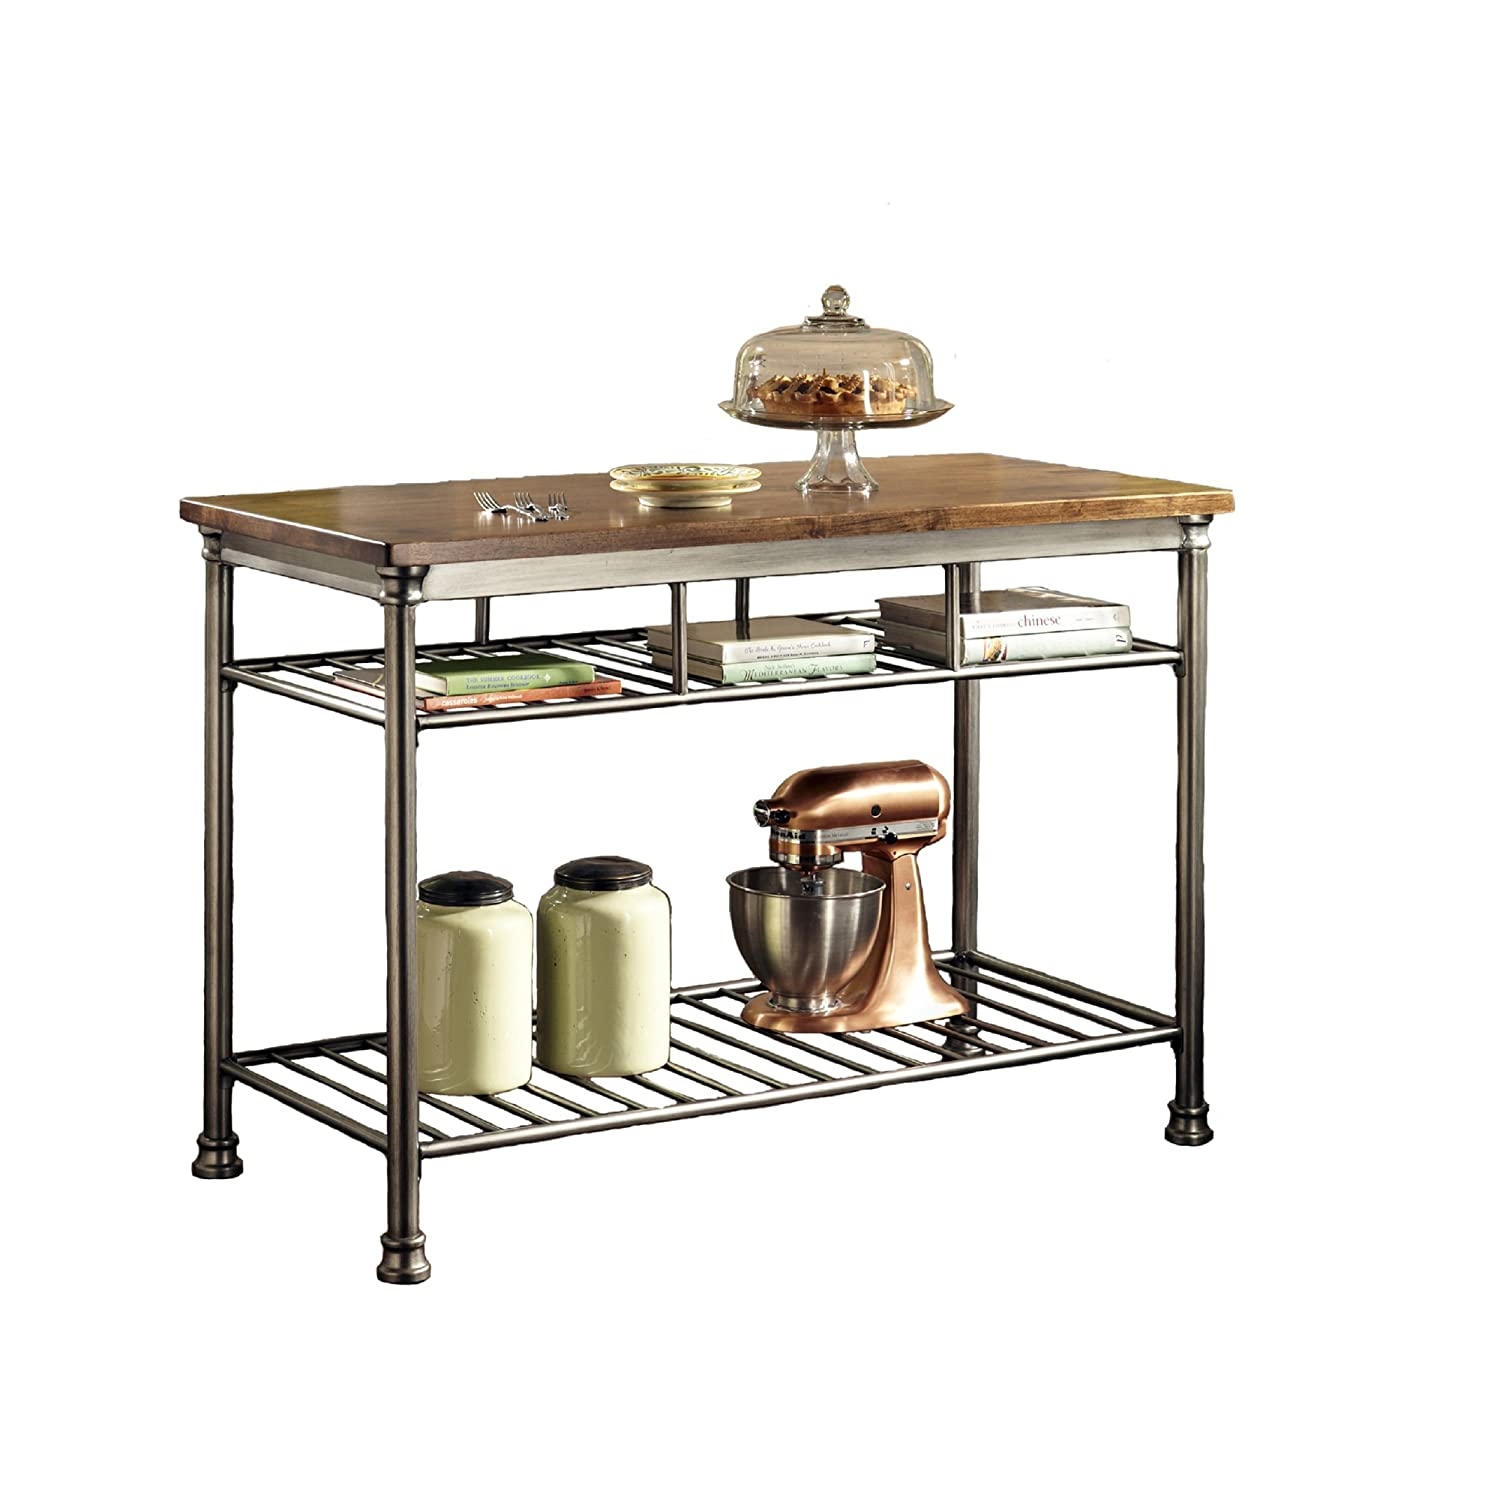 Amazoncom Home Styles The Orleans Kitchen Island Kitchen Dining - The orleans kitchen island with marble top